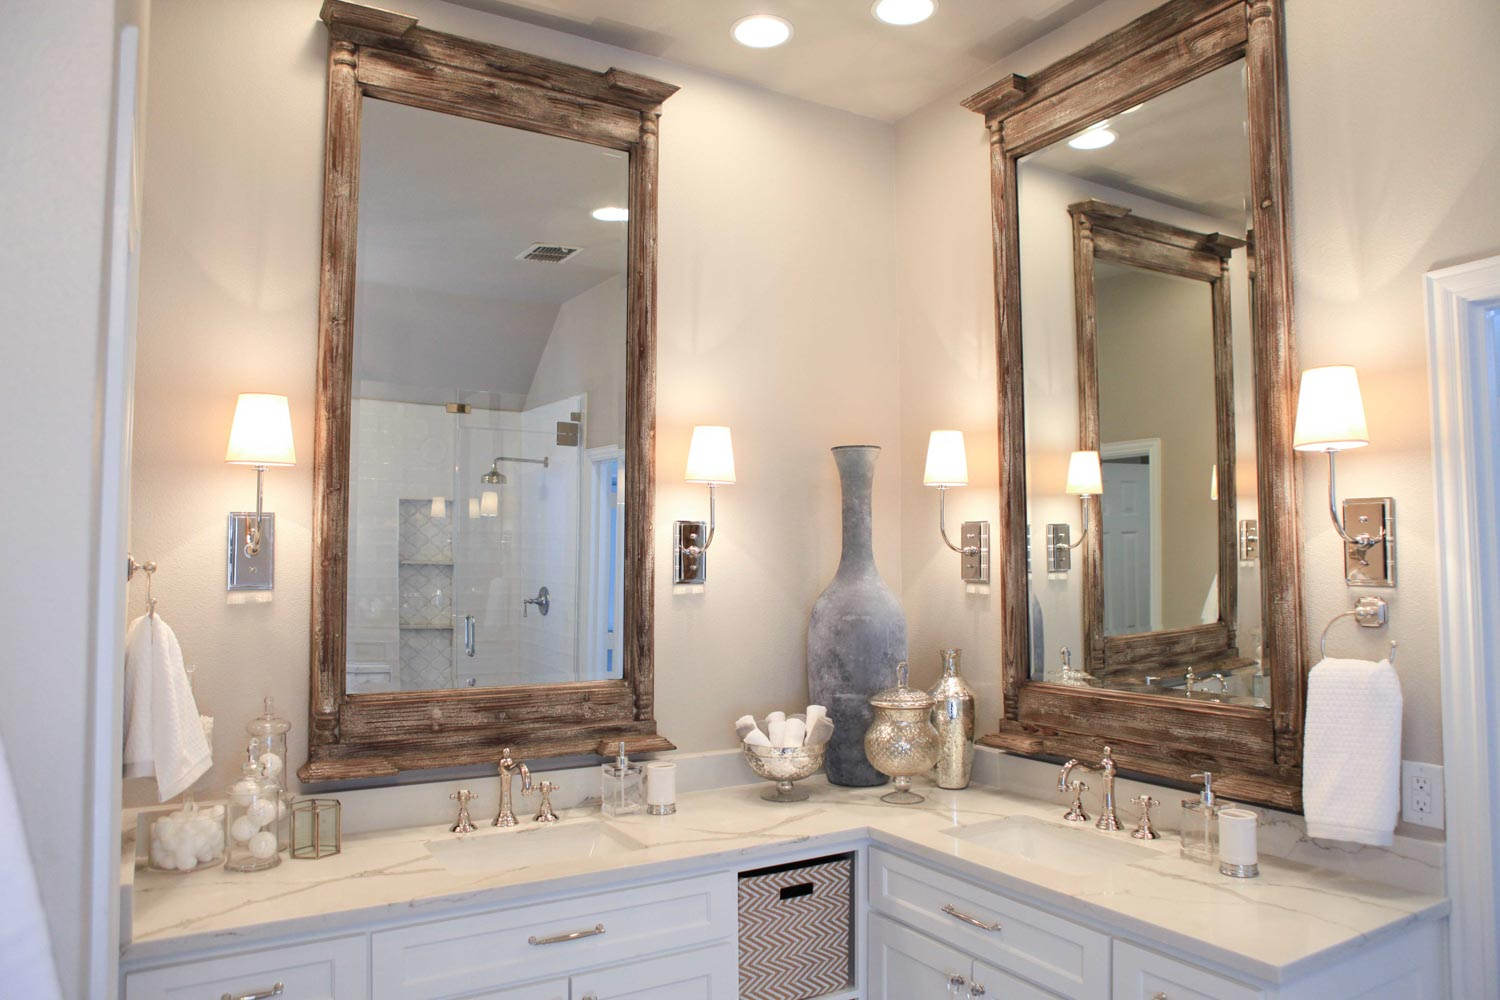 Gorgeous bathroom remodel designer Flower Mound.jpg